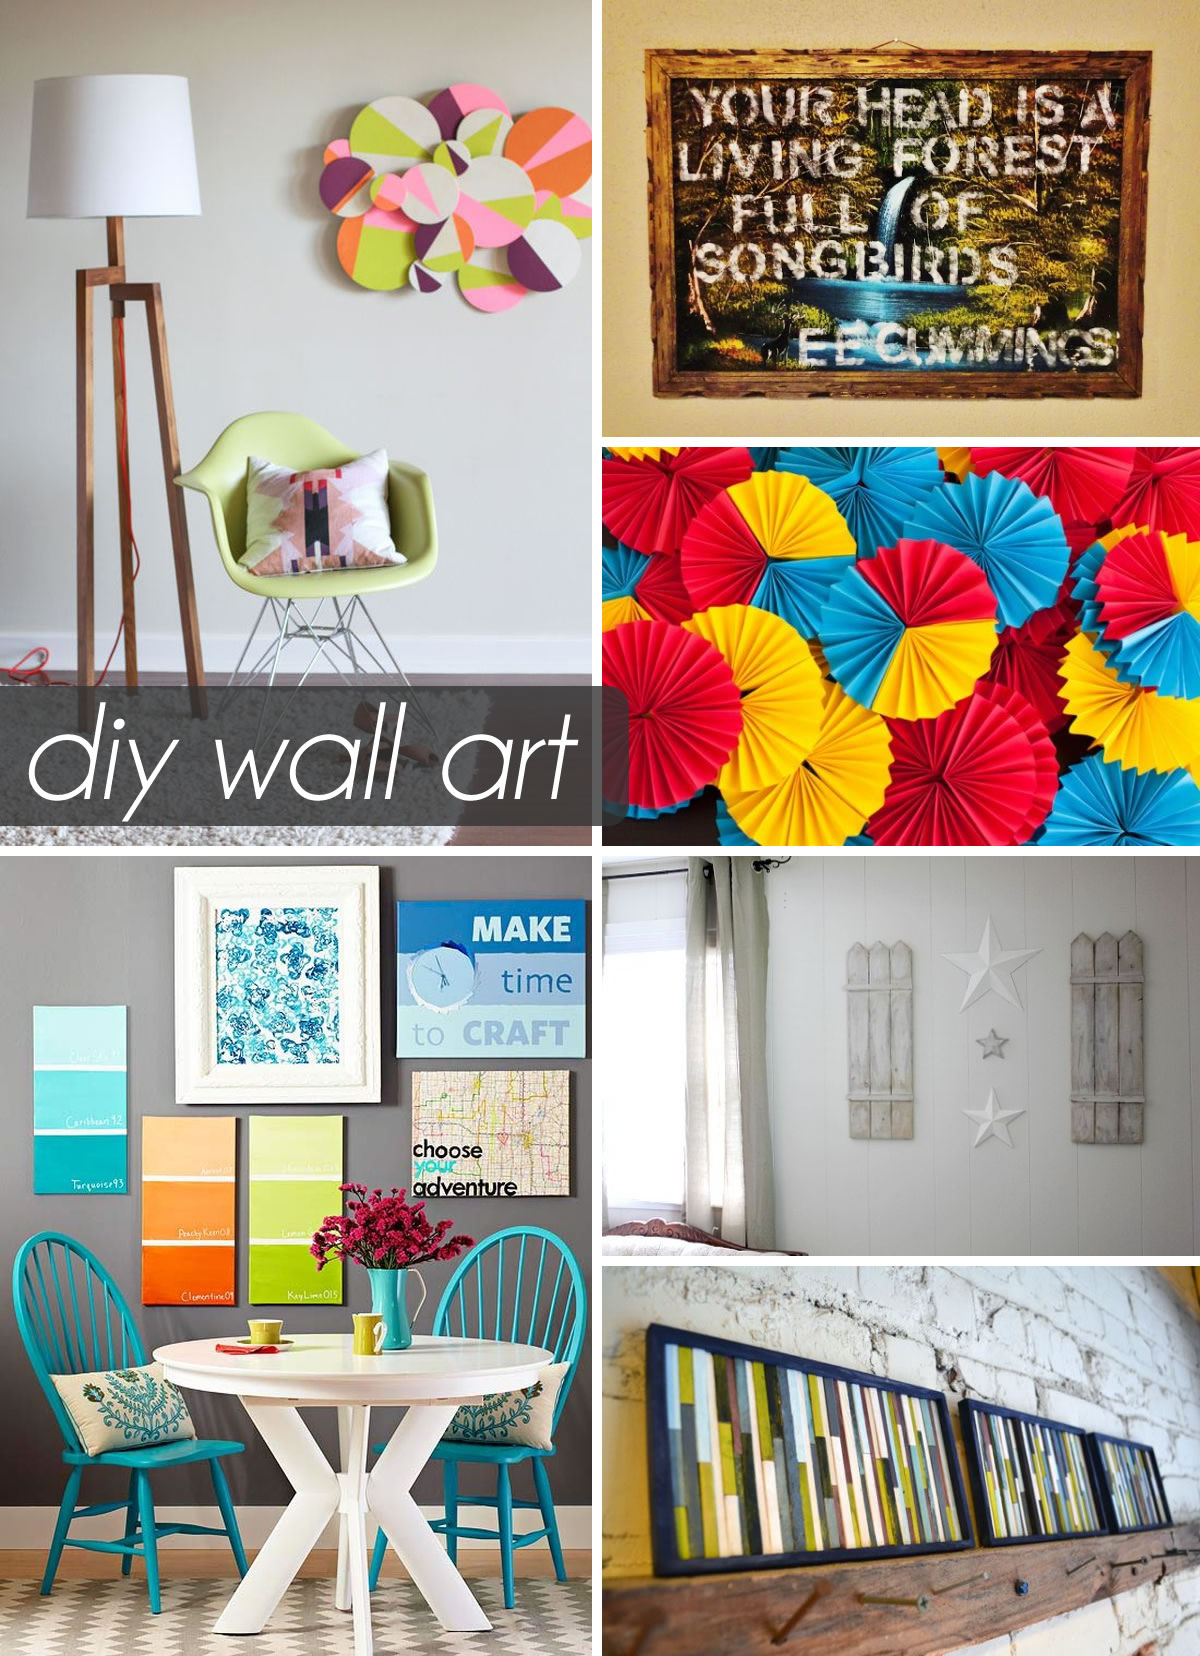 Ordinaire 50 Beautiful DIY Wall Art Ideas For Your Home